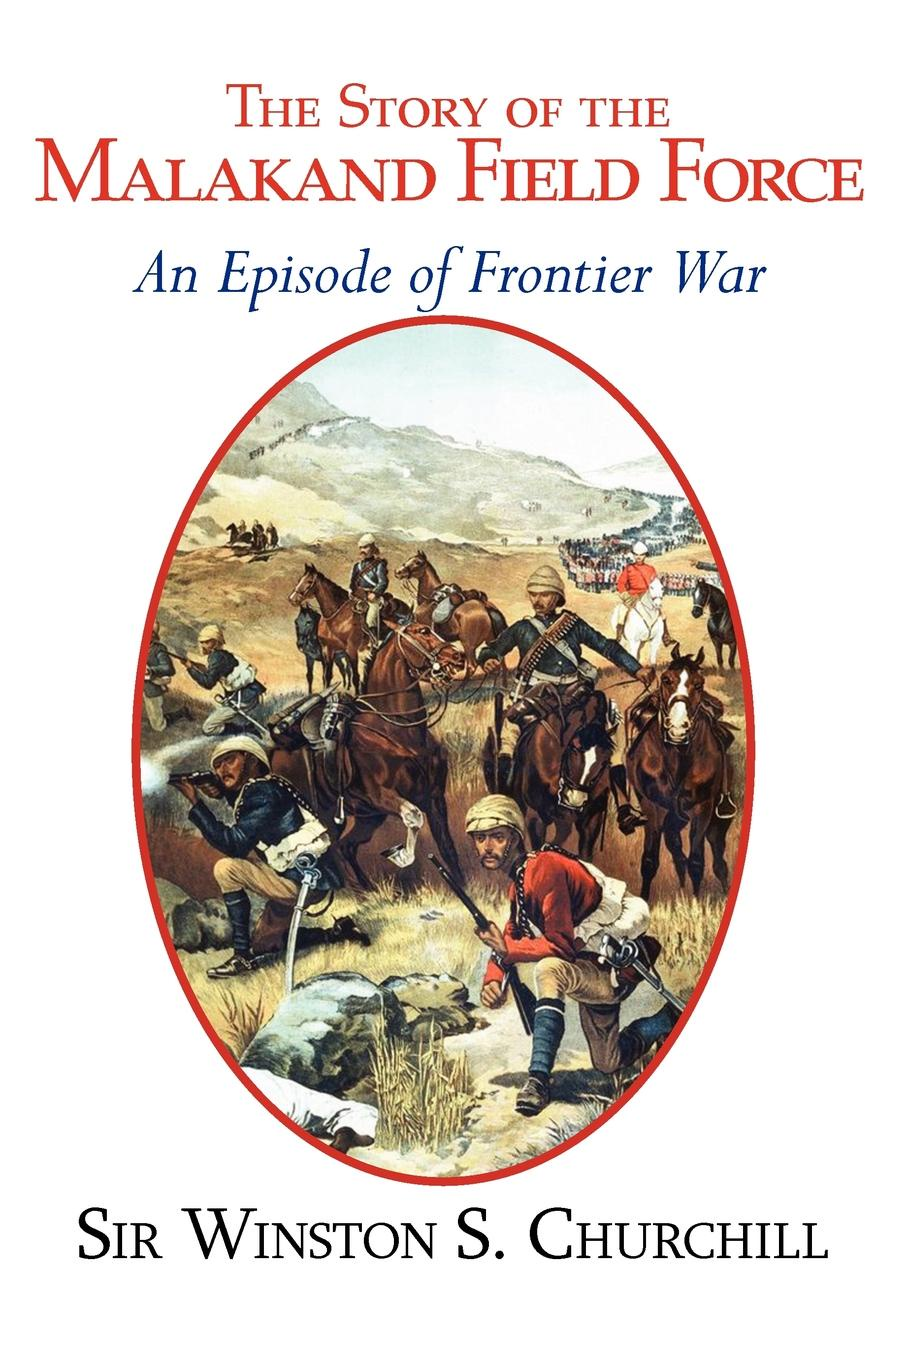 Winston S. Churchill The Story of the Malakand Field Force - An Episode of the Frontier War winston churchill s war leadership